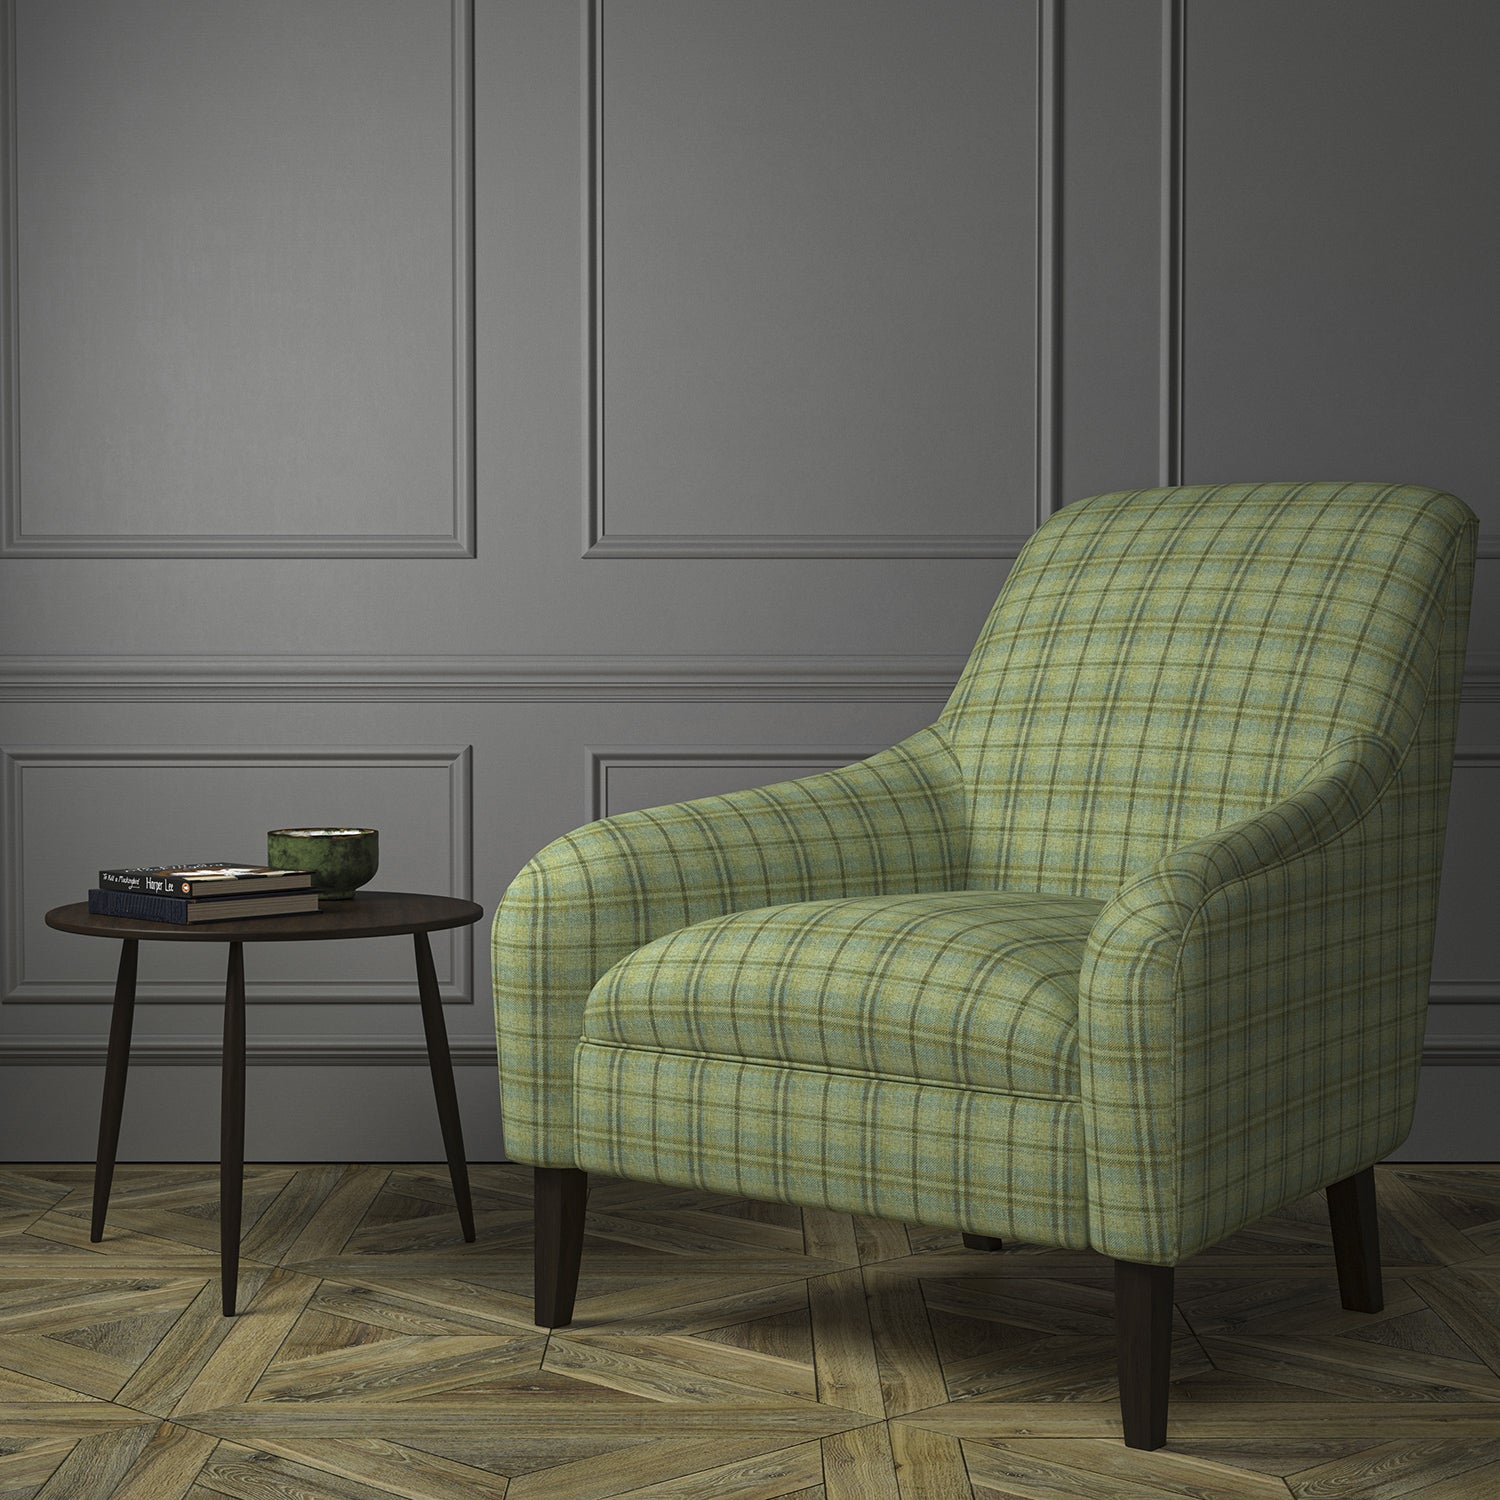 Chair upholstered in a luxury Scottish green wool tartan upholstery fabric